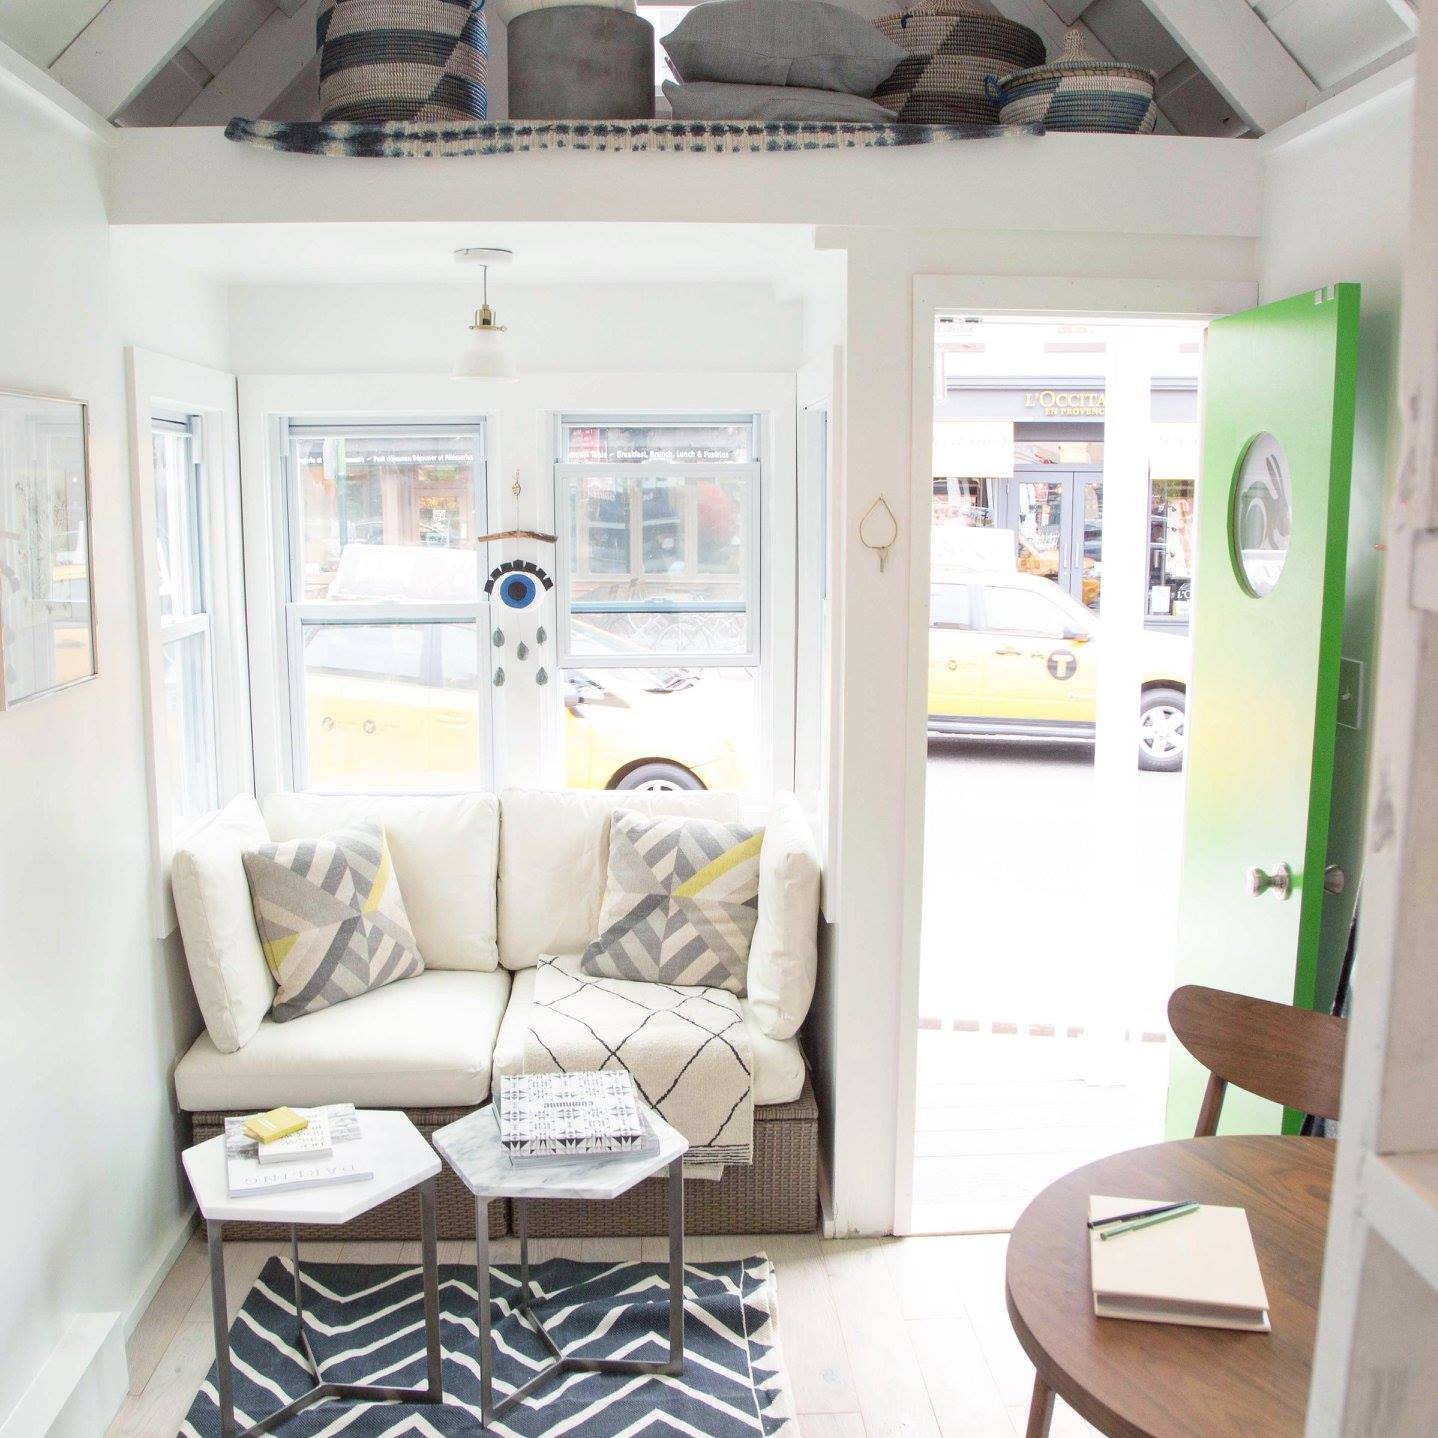 TINY HOUSE TOWN: NYC Tiny House Built in 72 Hours